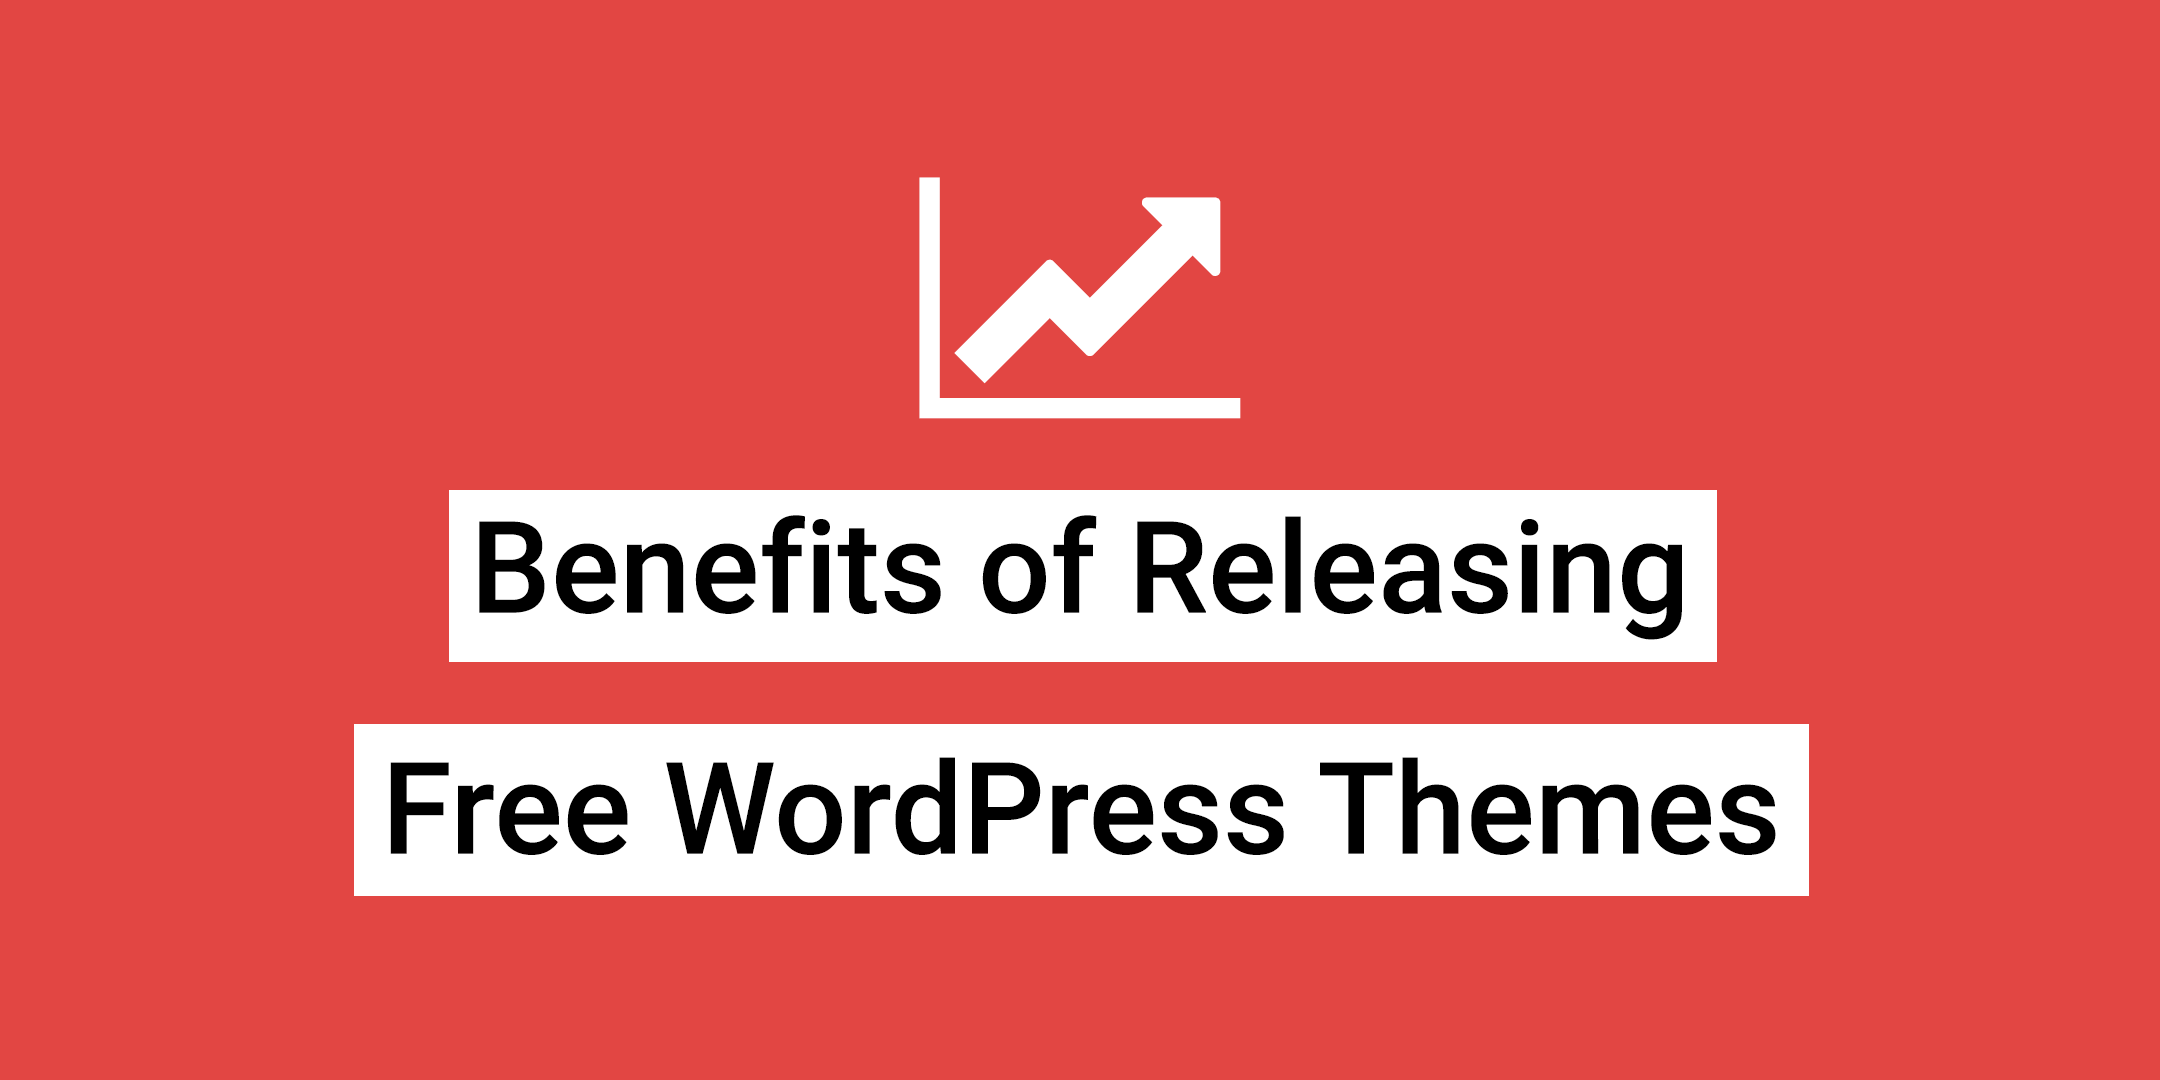 Benefits of releasing a free WordPress theme